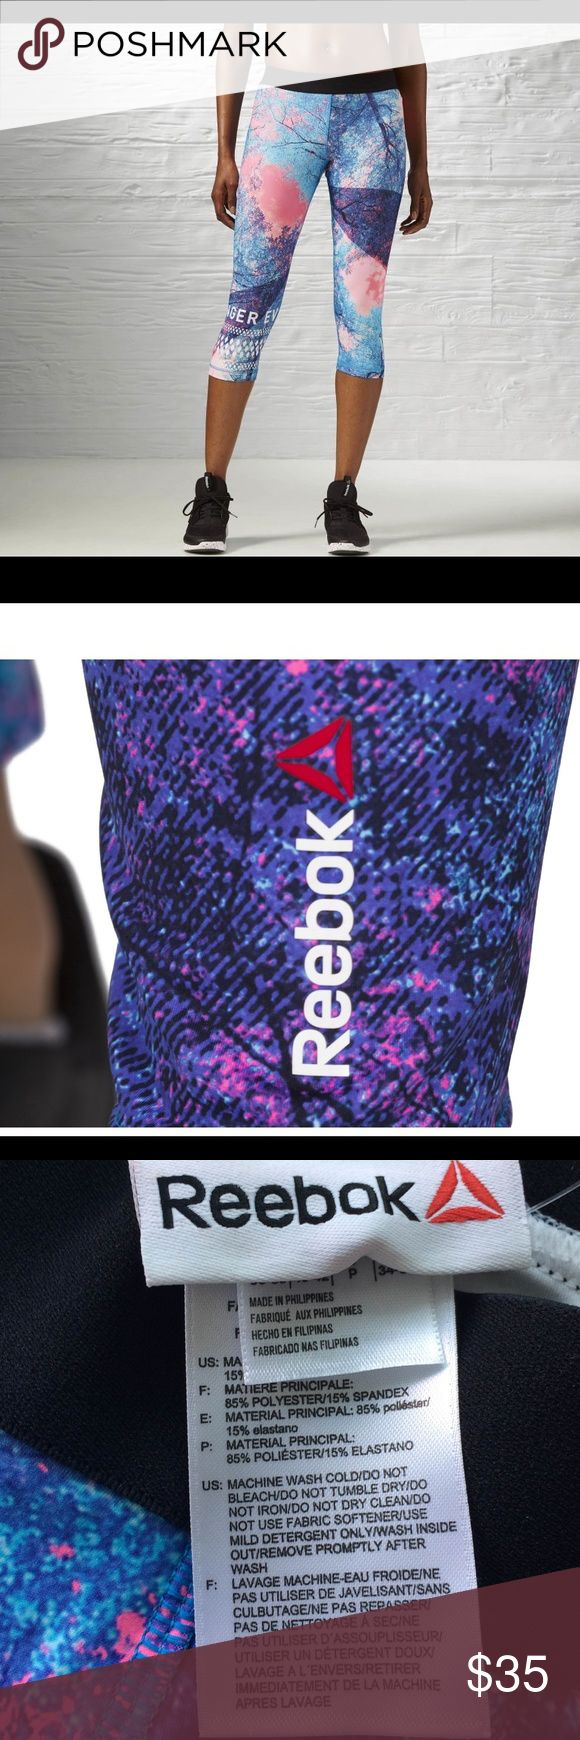 Reebok CAPRI (AY4483) Size : S 85% Polyester / 15% Elastane fabric for stretch and mobility Slim Fit  Speedwick technology wicks sweat away from the body to help you stay cool and dry Flatlock stitching sits smoothly against the skin and prevents chafing Exposed elastic waistband for a comfort and fit Antimicrobial treatment to stop odor buildup Capri length with a tree-inspired graphic         *No Returns Reebok Pants